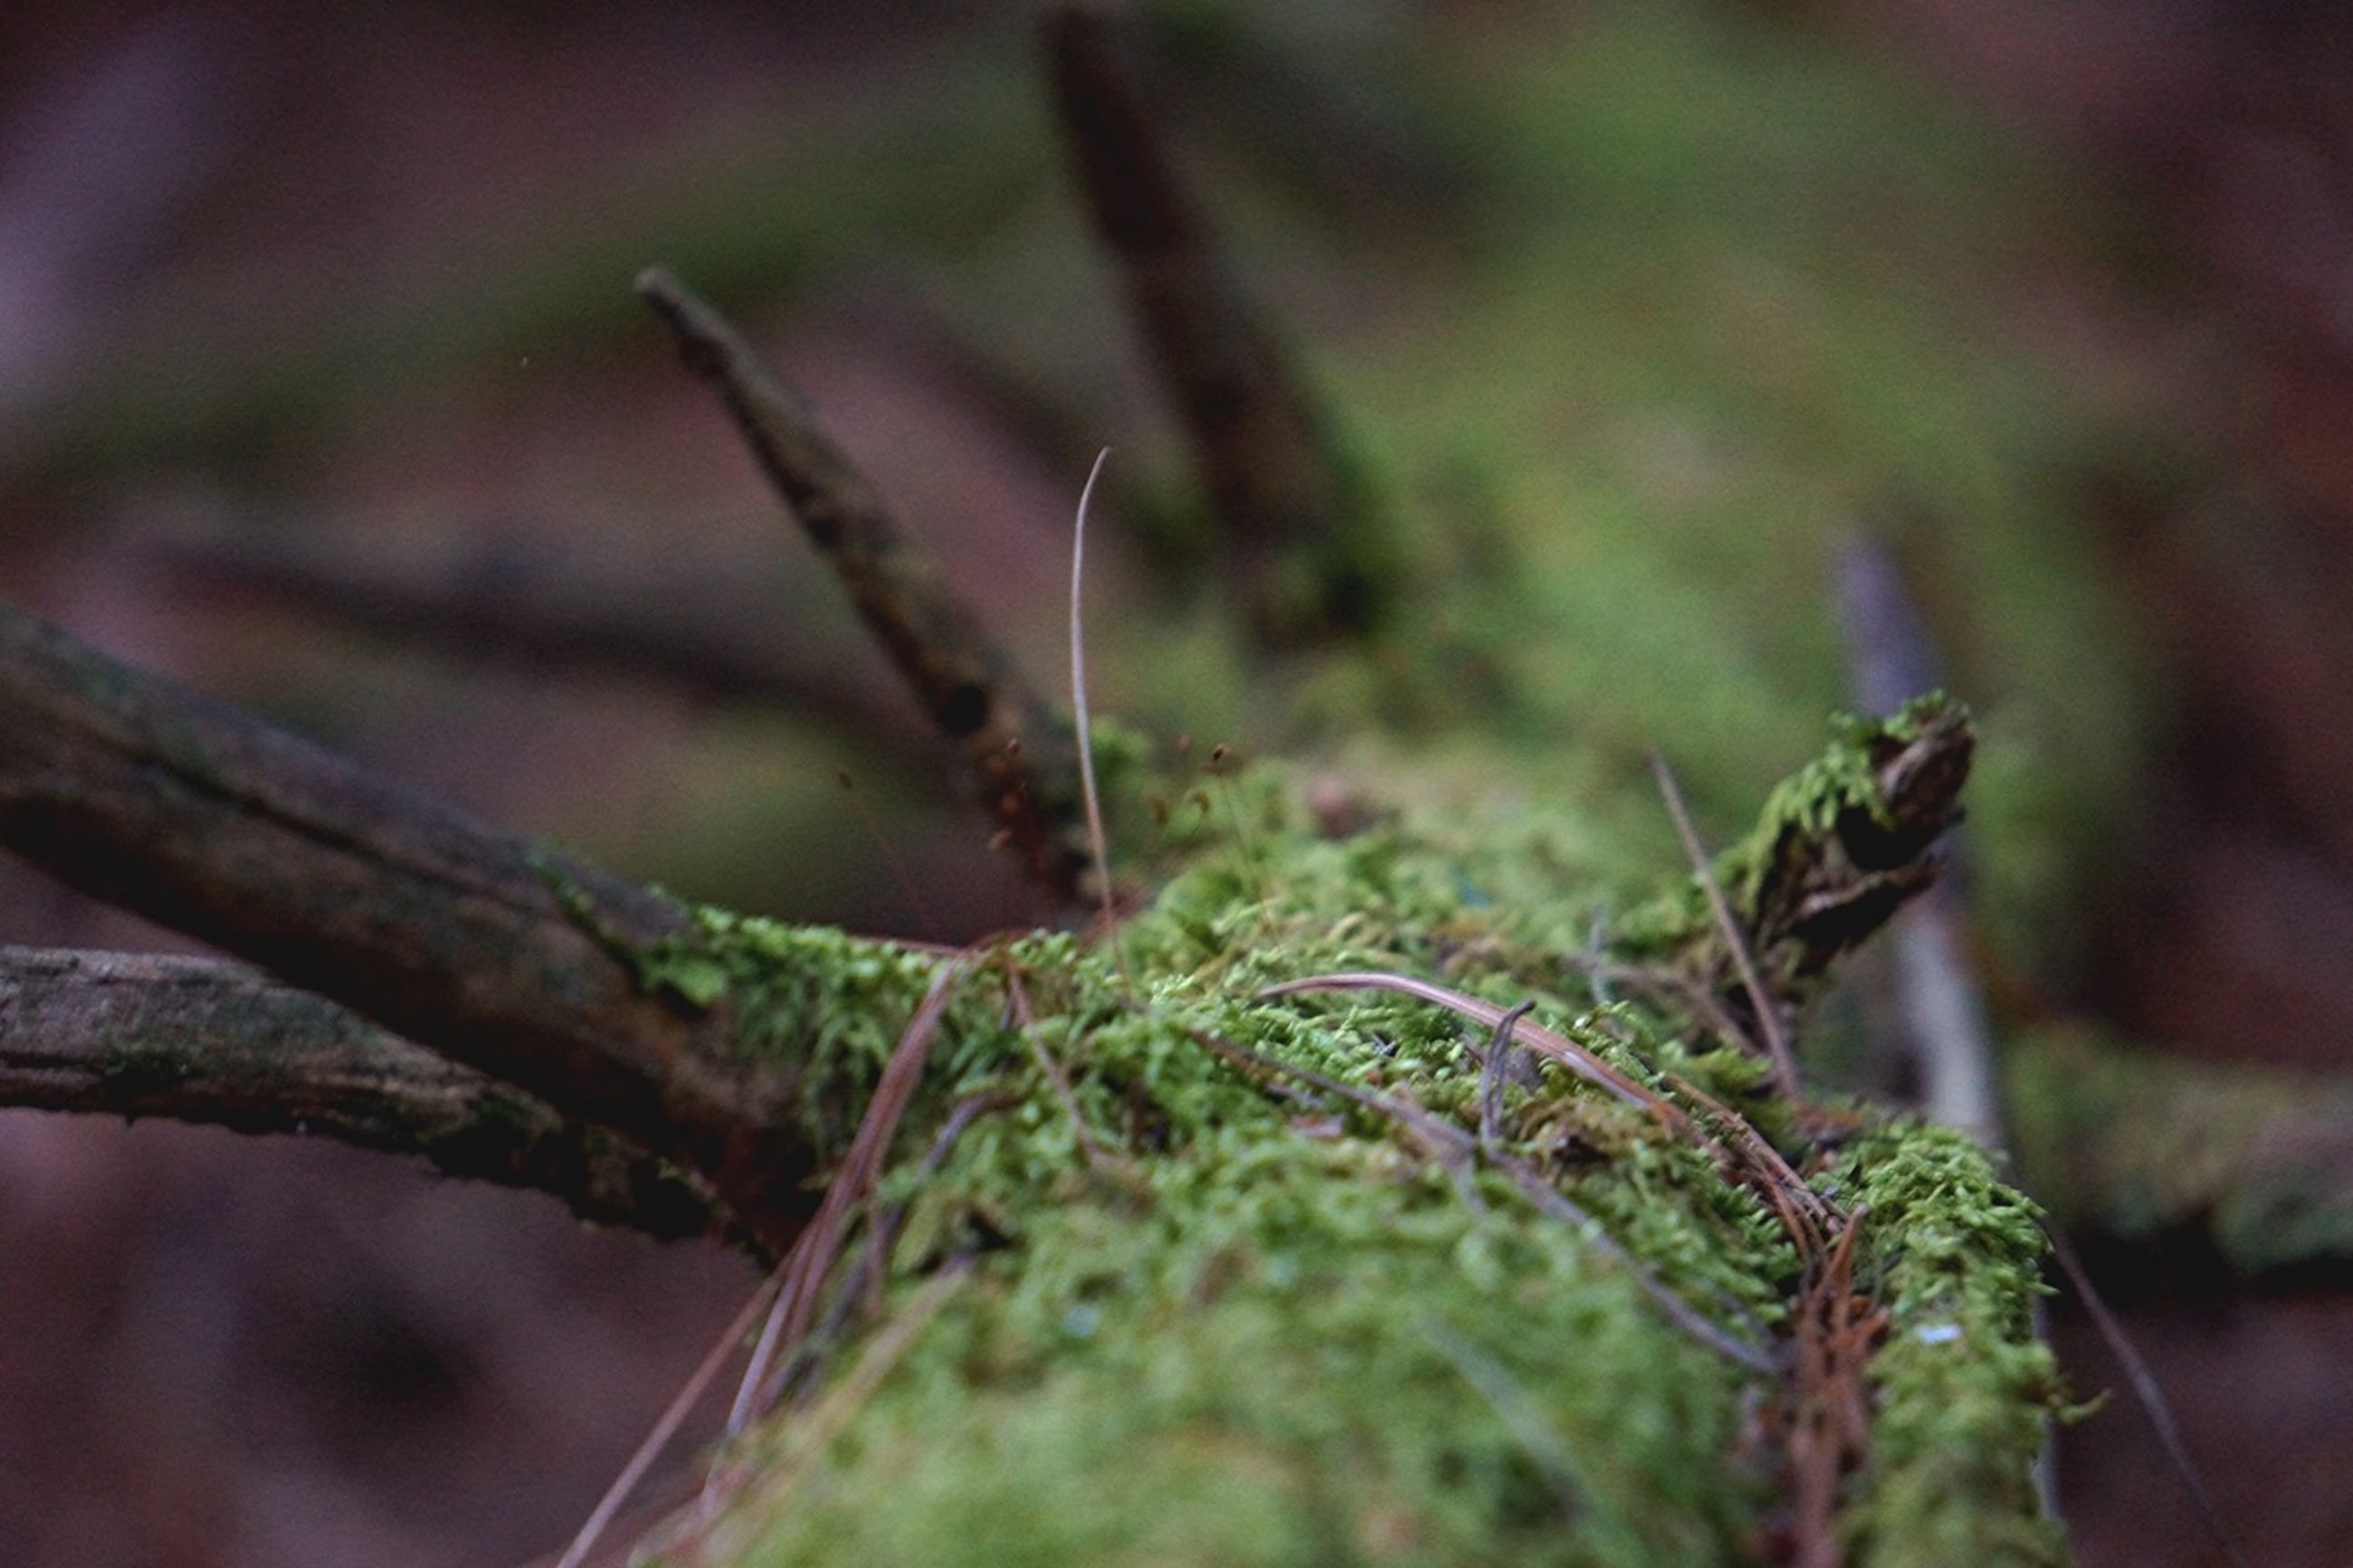 focus on foreground, close-up, selective focus, growth, plant, nature, leaf, green color, twig, outdoors, day, tranquility, no people, branch, stem, growing, dry, beauty in nature, field, sunlight